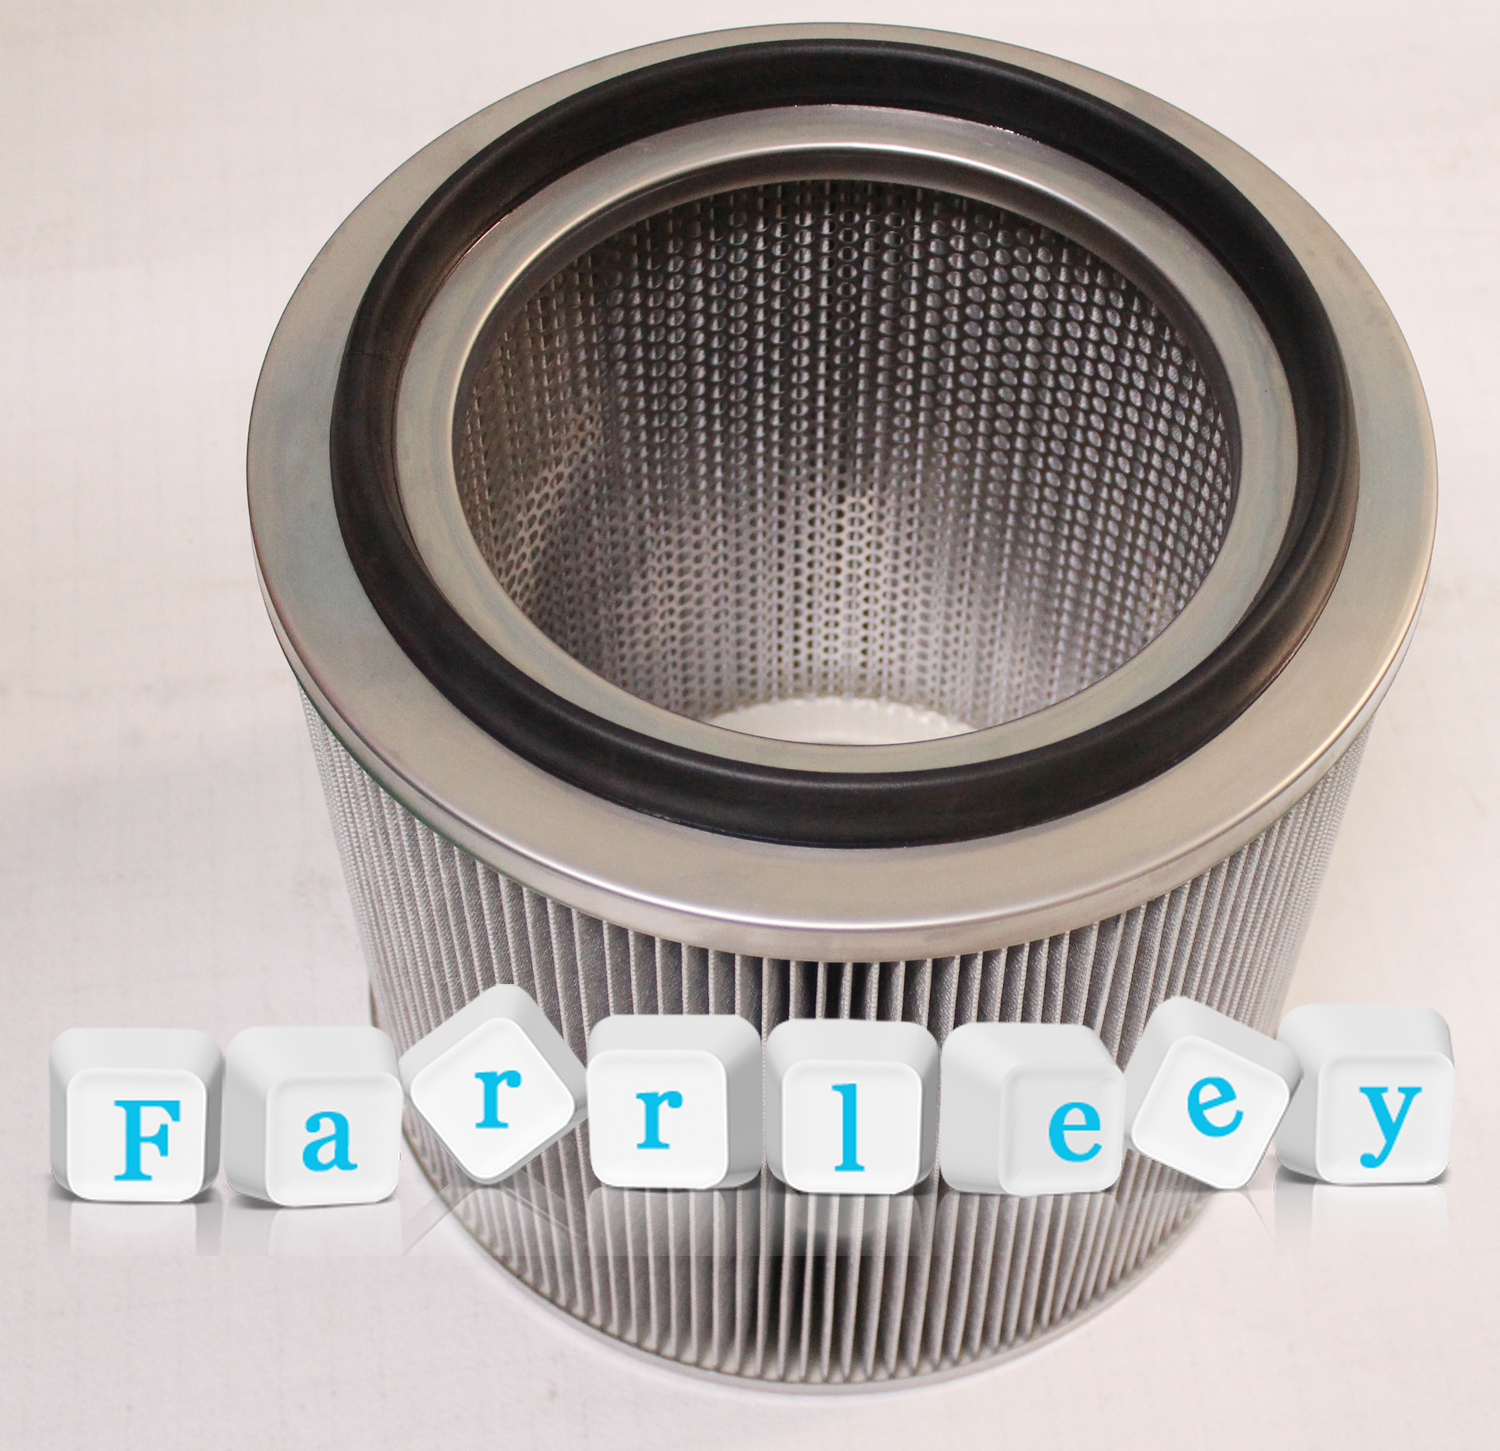 Farrleey Anti-static Pleated Air Filter Cartridge